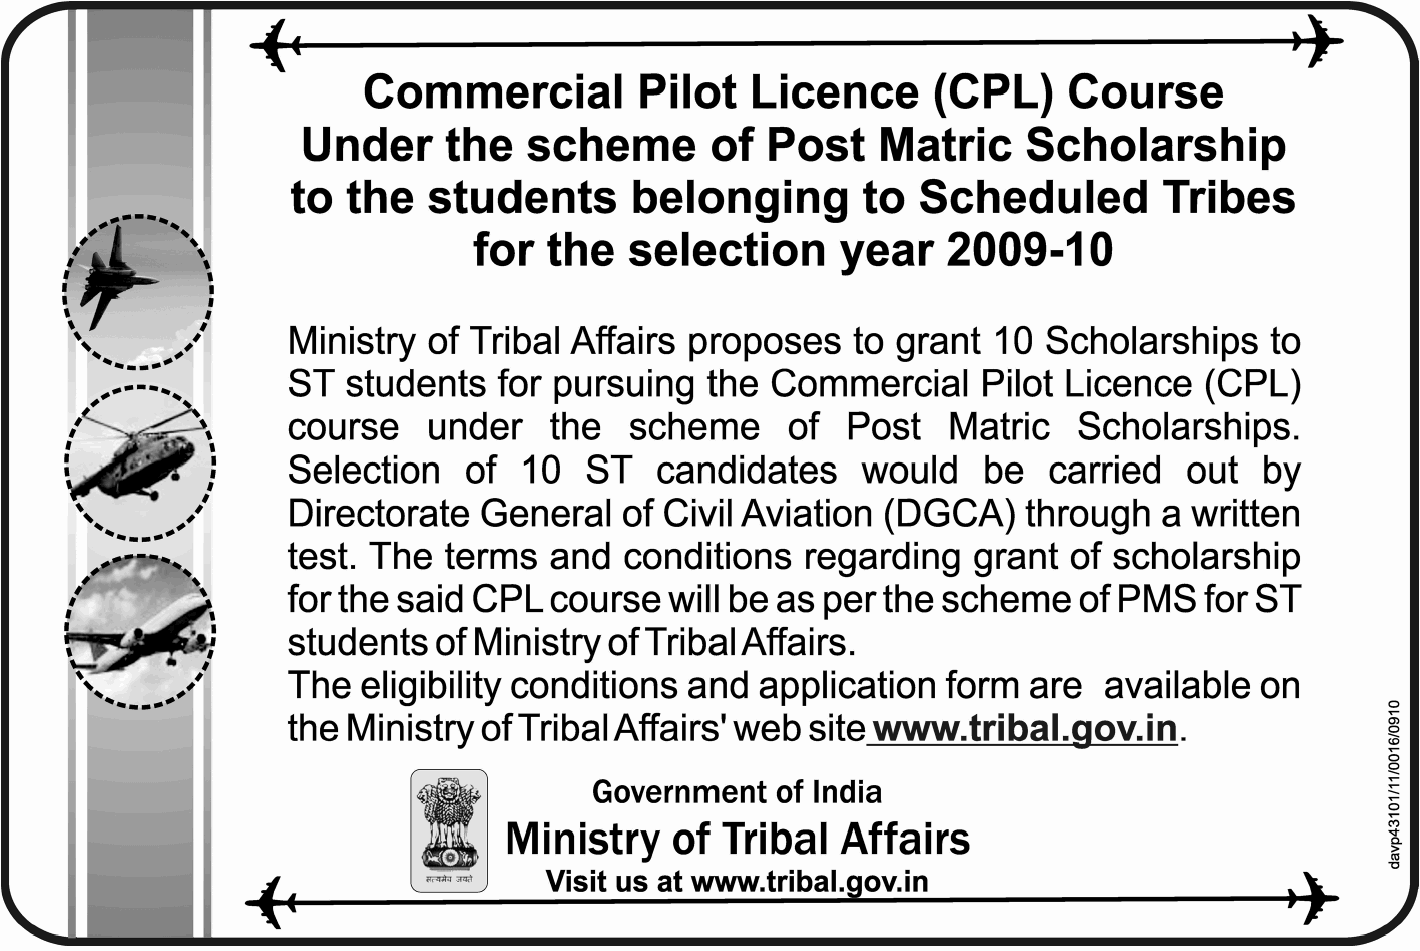 Post Matric Scholarship for Commercial Pilot Licence Course, India ...